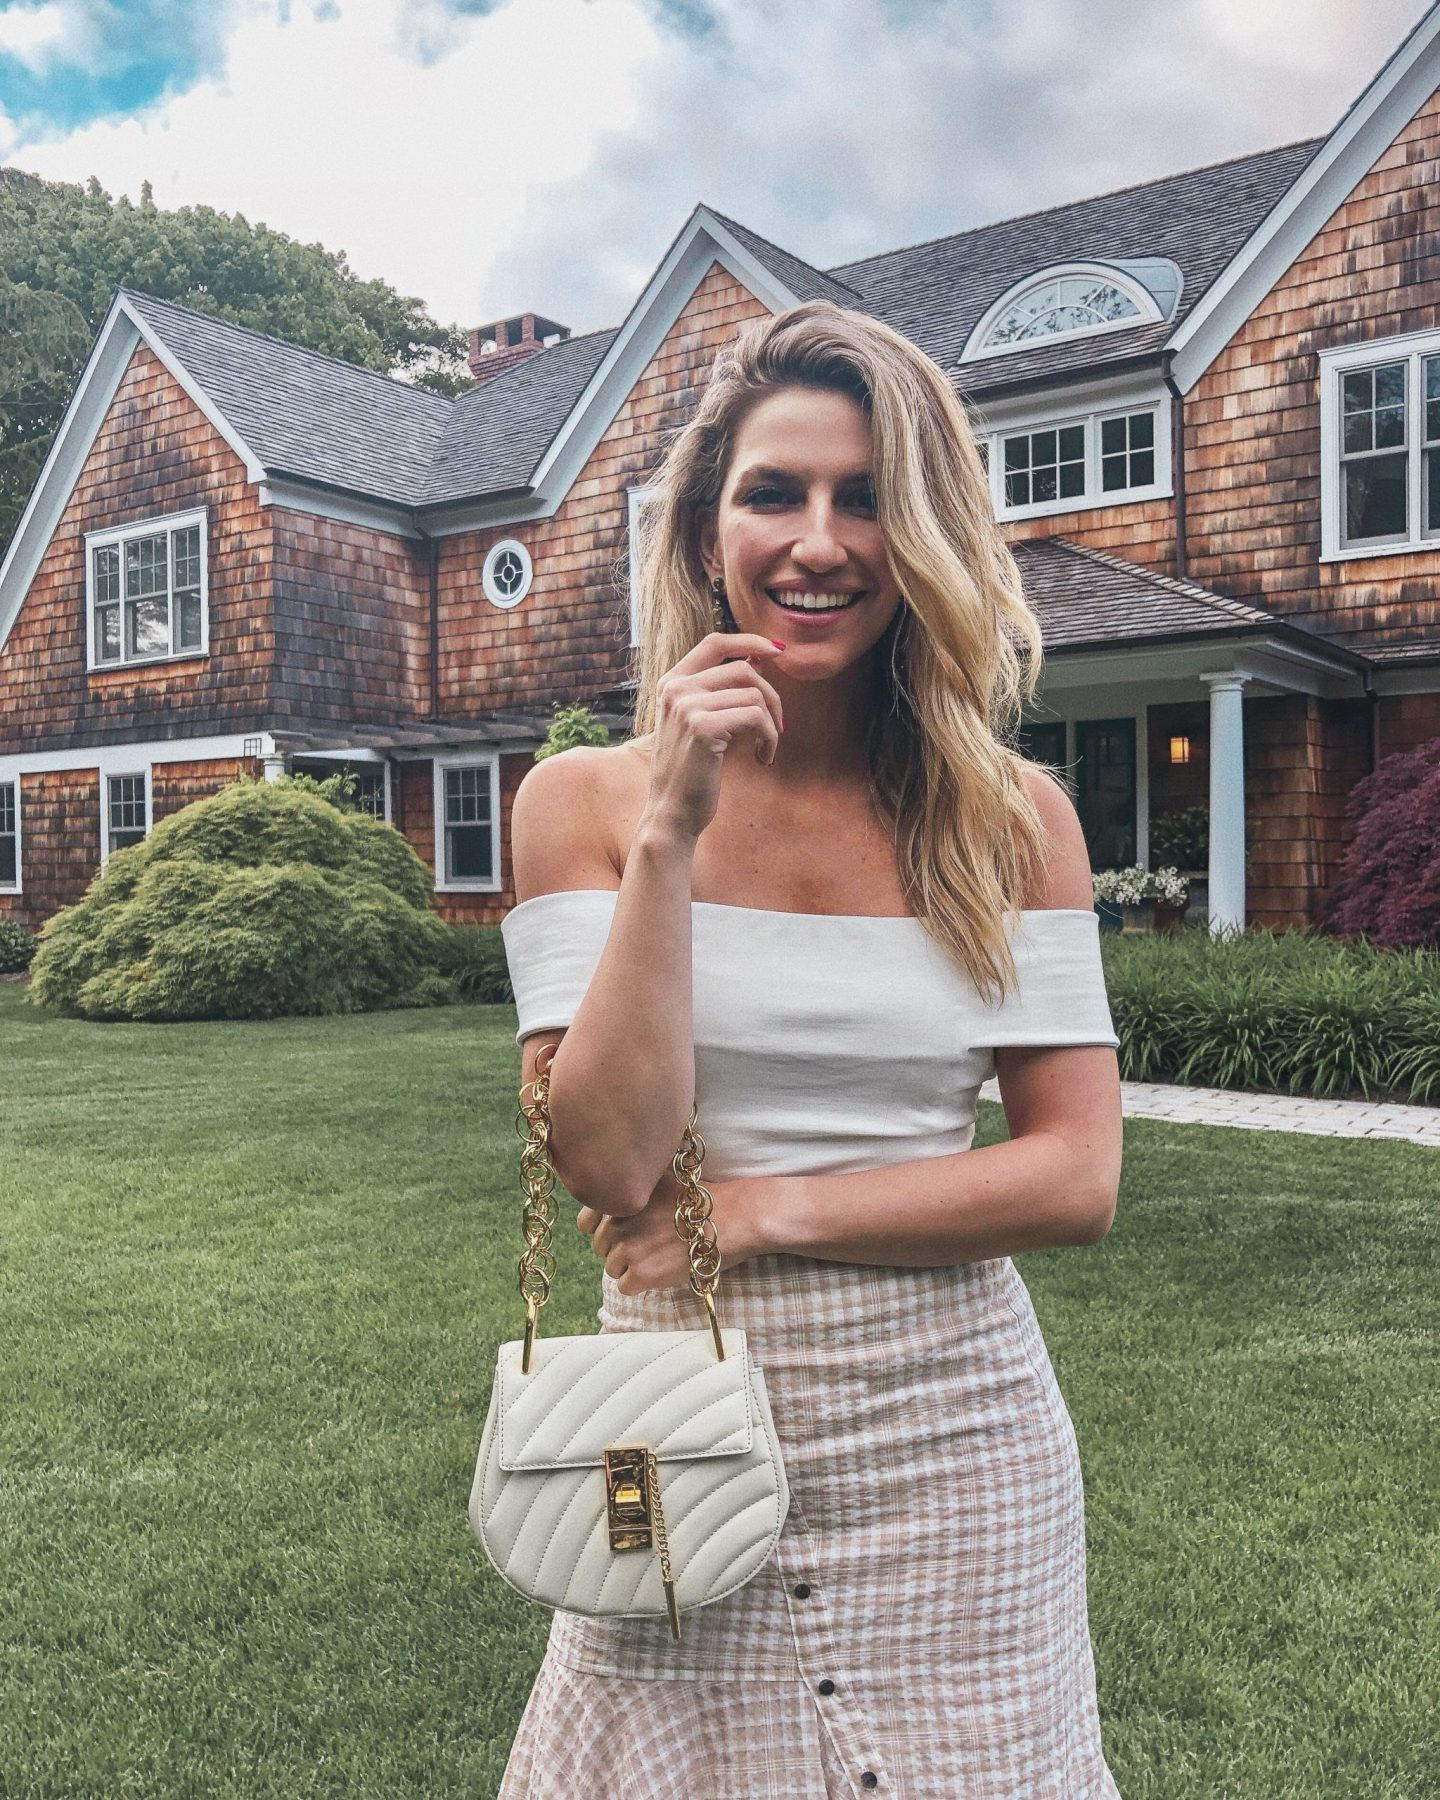 Cassandra DiMicco, Cass DiMicco, Dressed For Dreams, NYC, New York City, New York, Street Style NYC, Street Style 2018, NYC Street Style Street Style Outfits, 2018 Trends, NYC Fashion Blogger, NYC to do list, NYC to do, NYC bucket list, NYC Instagram Spots, Hamptons, Montauk, Chloe Bag, Chloe Mini Bijou bag, White off the shoulder top, pink plaid skirt, Hamptons style